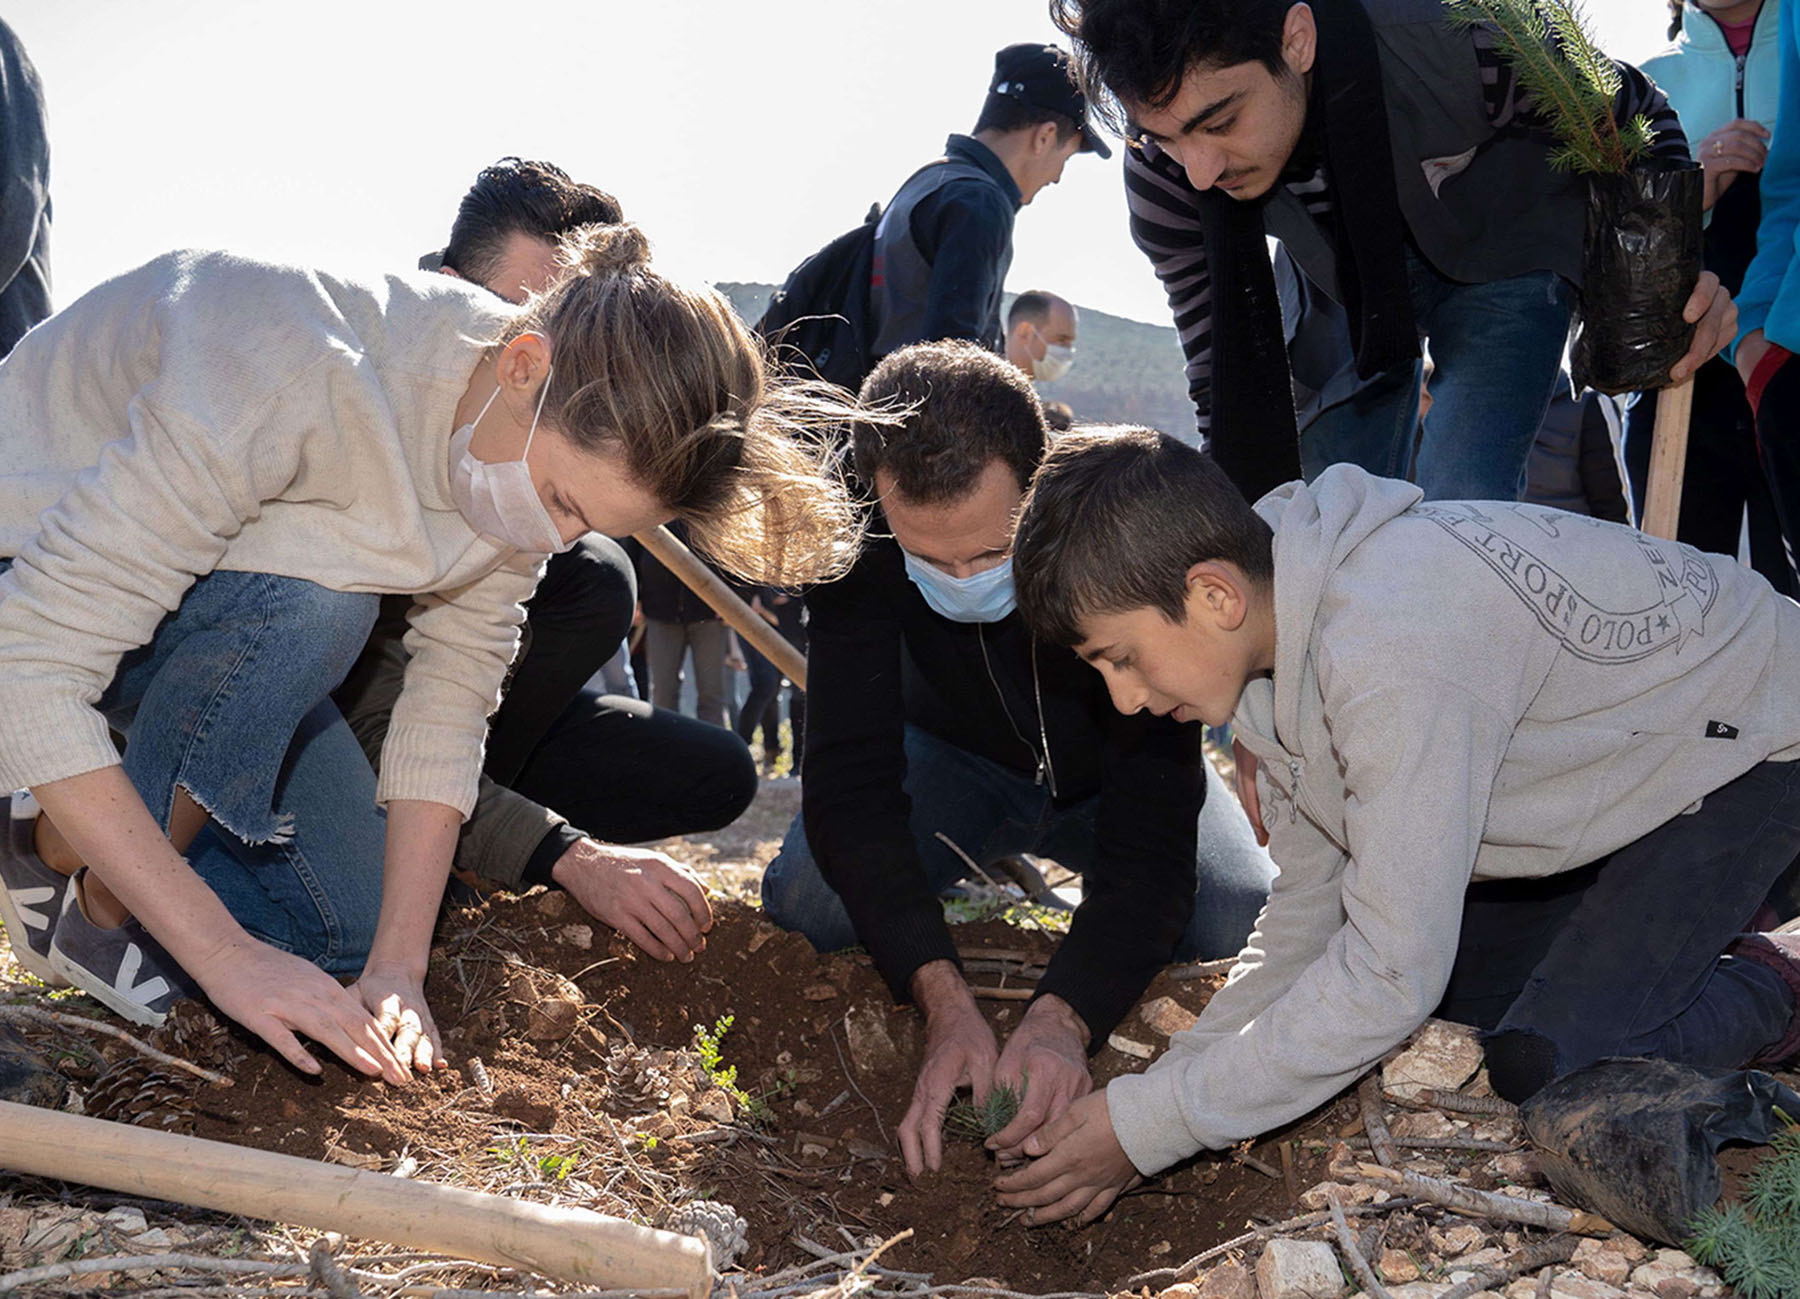 Syrian President Bashar al-Assad (C), his wife Asma (L) and their children during the afforestation of Harsh al-Tufaha (Apple Forest) area in al-Drekish countryside in western Syria. (AFP)